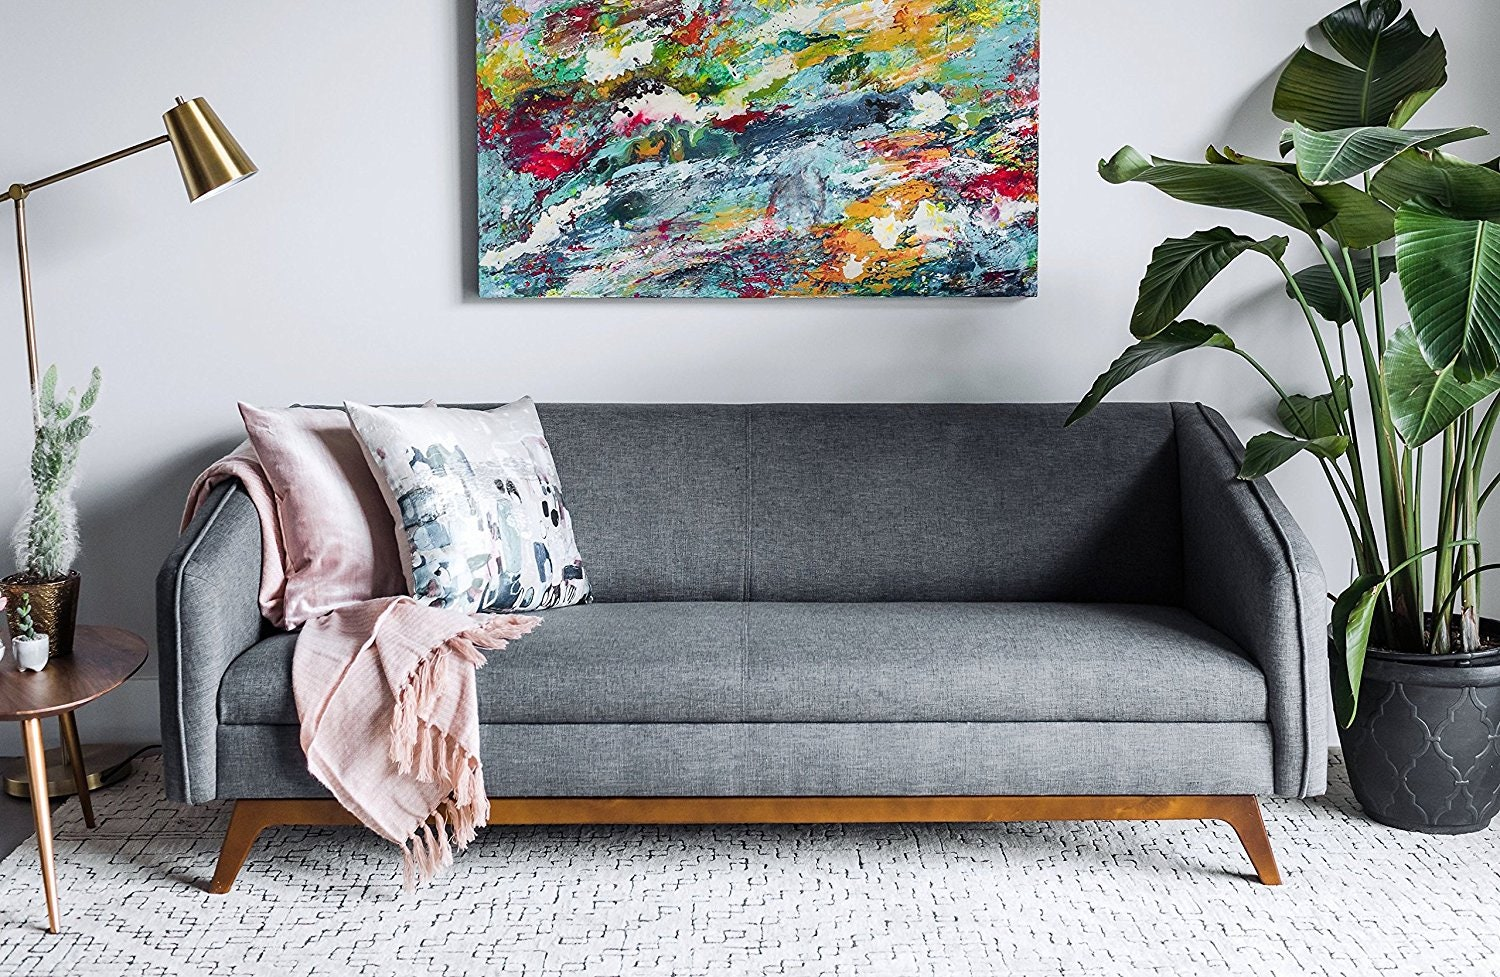 Cheap Amazon Furniture and Home Decor That Look Wayyy More ...